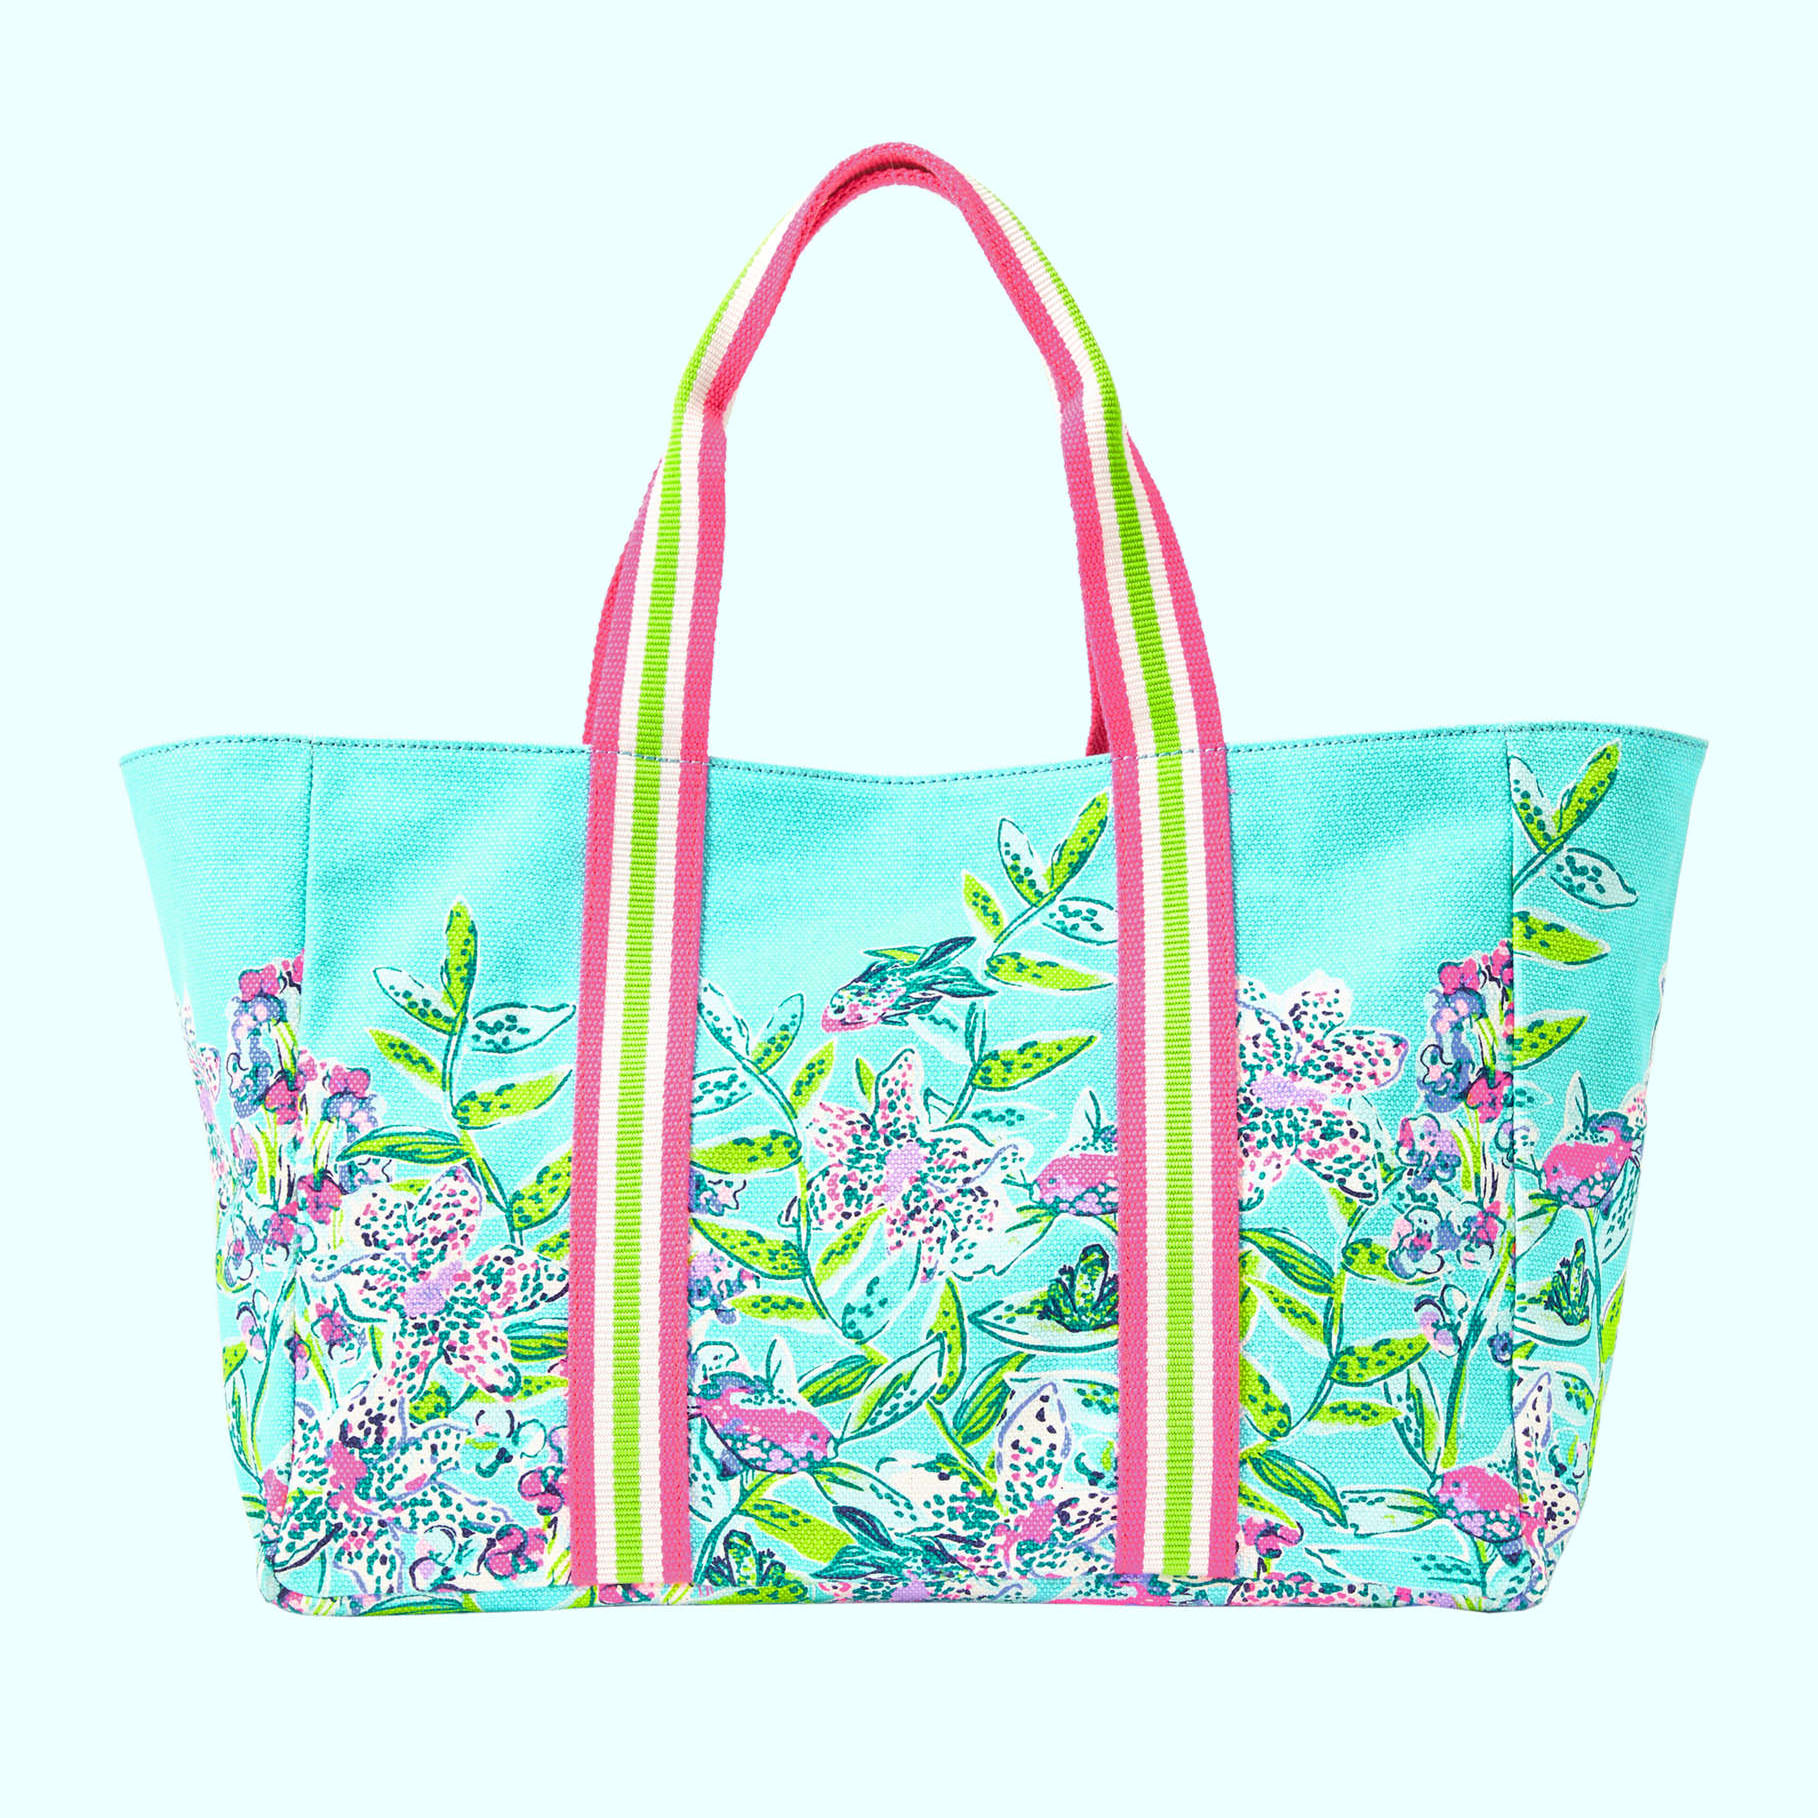 Lillys Lagoon Tote Bag